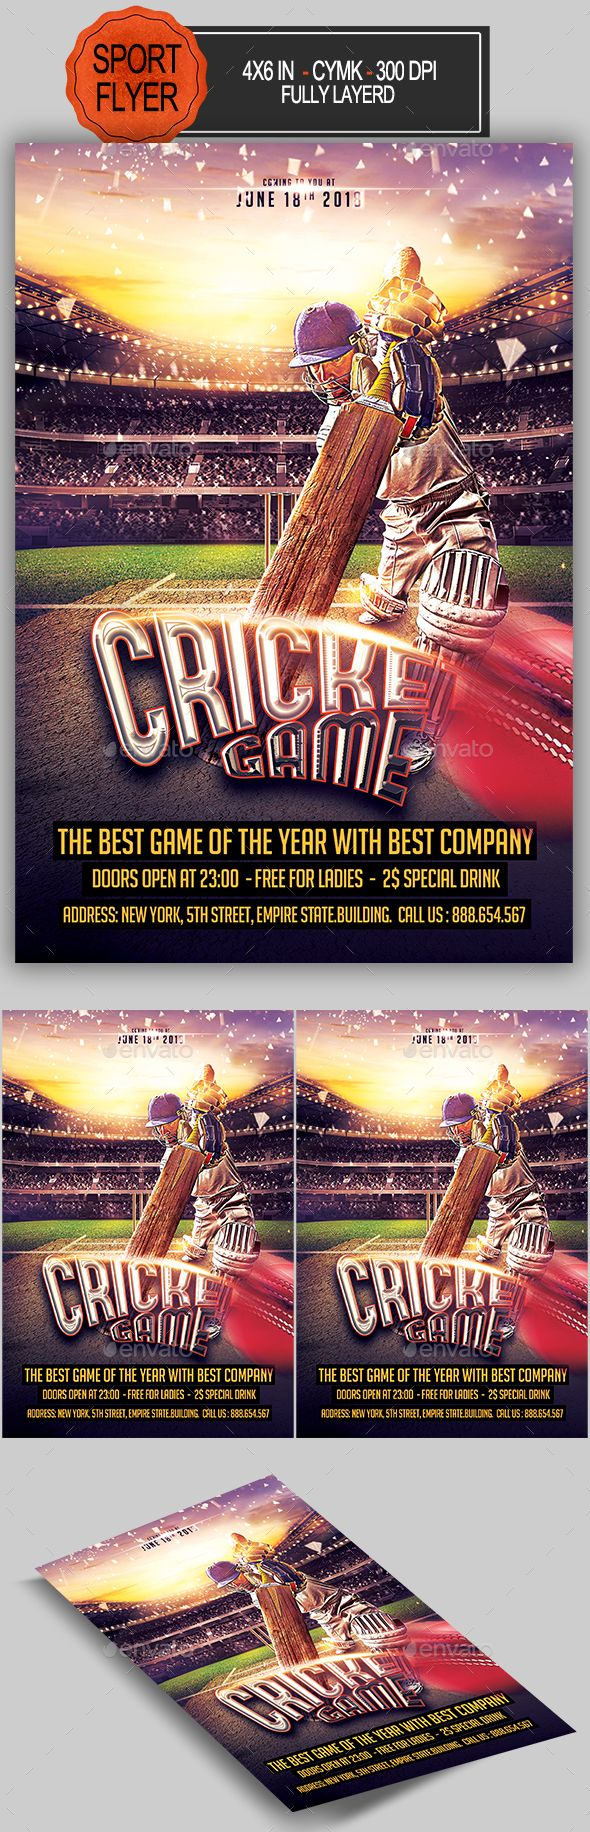 Cricket Game Flyer Design Template - Sports Events Flyer Template PSD. Download here: https://graphicriver.net/item/cricket-game-flyer/17036311?s_rank=18&ref=yinkira